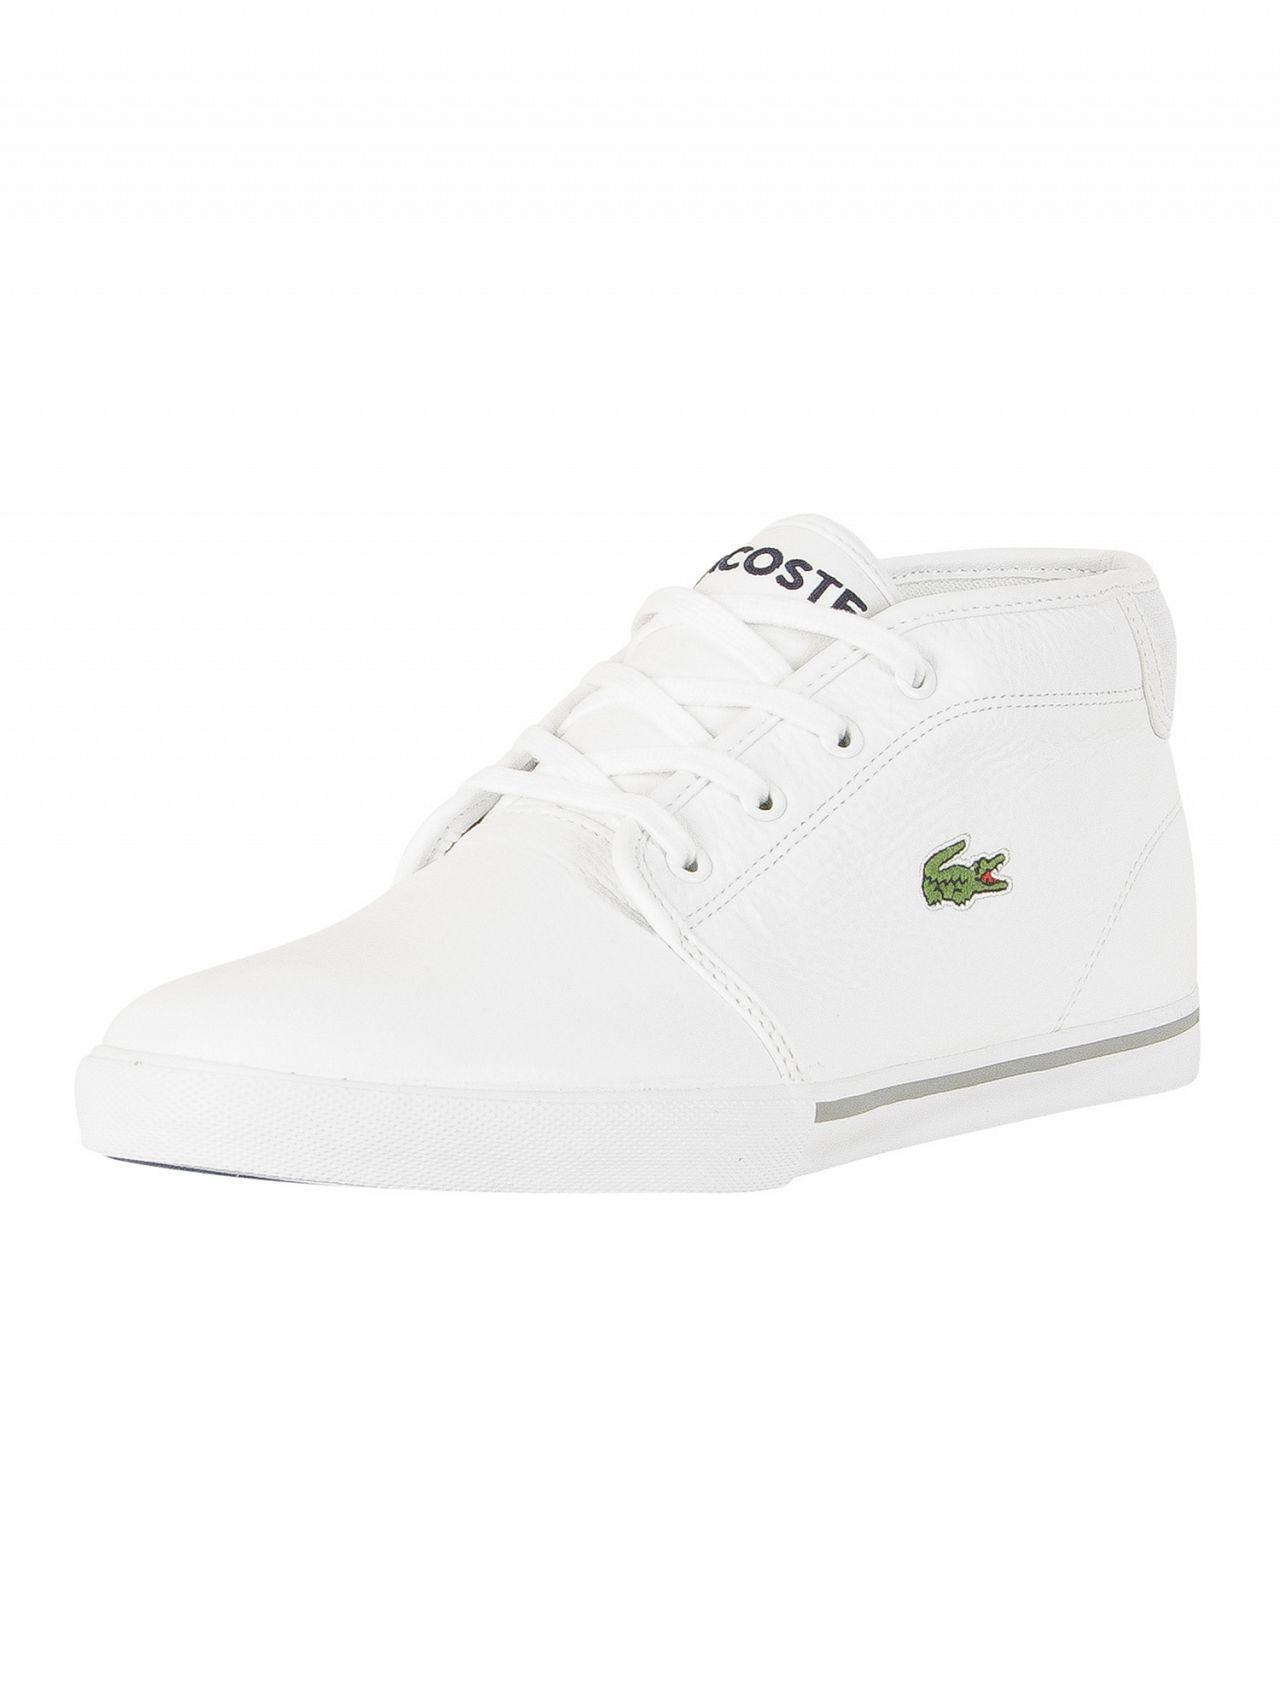 18907cfd04bb90 Lacoste White white Ampthill Lcr3 Spm Trainers in White for Men - Lyst